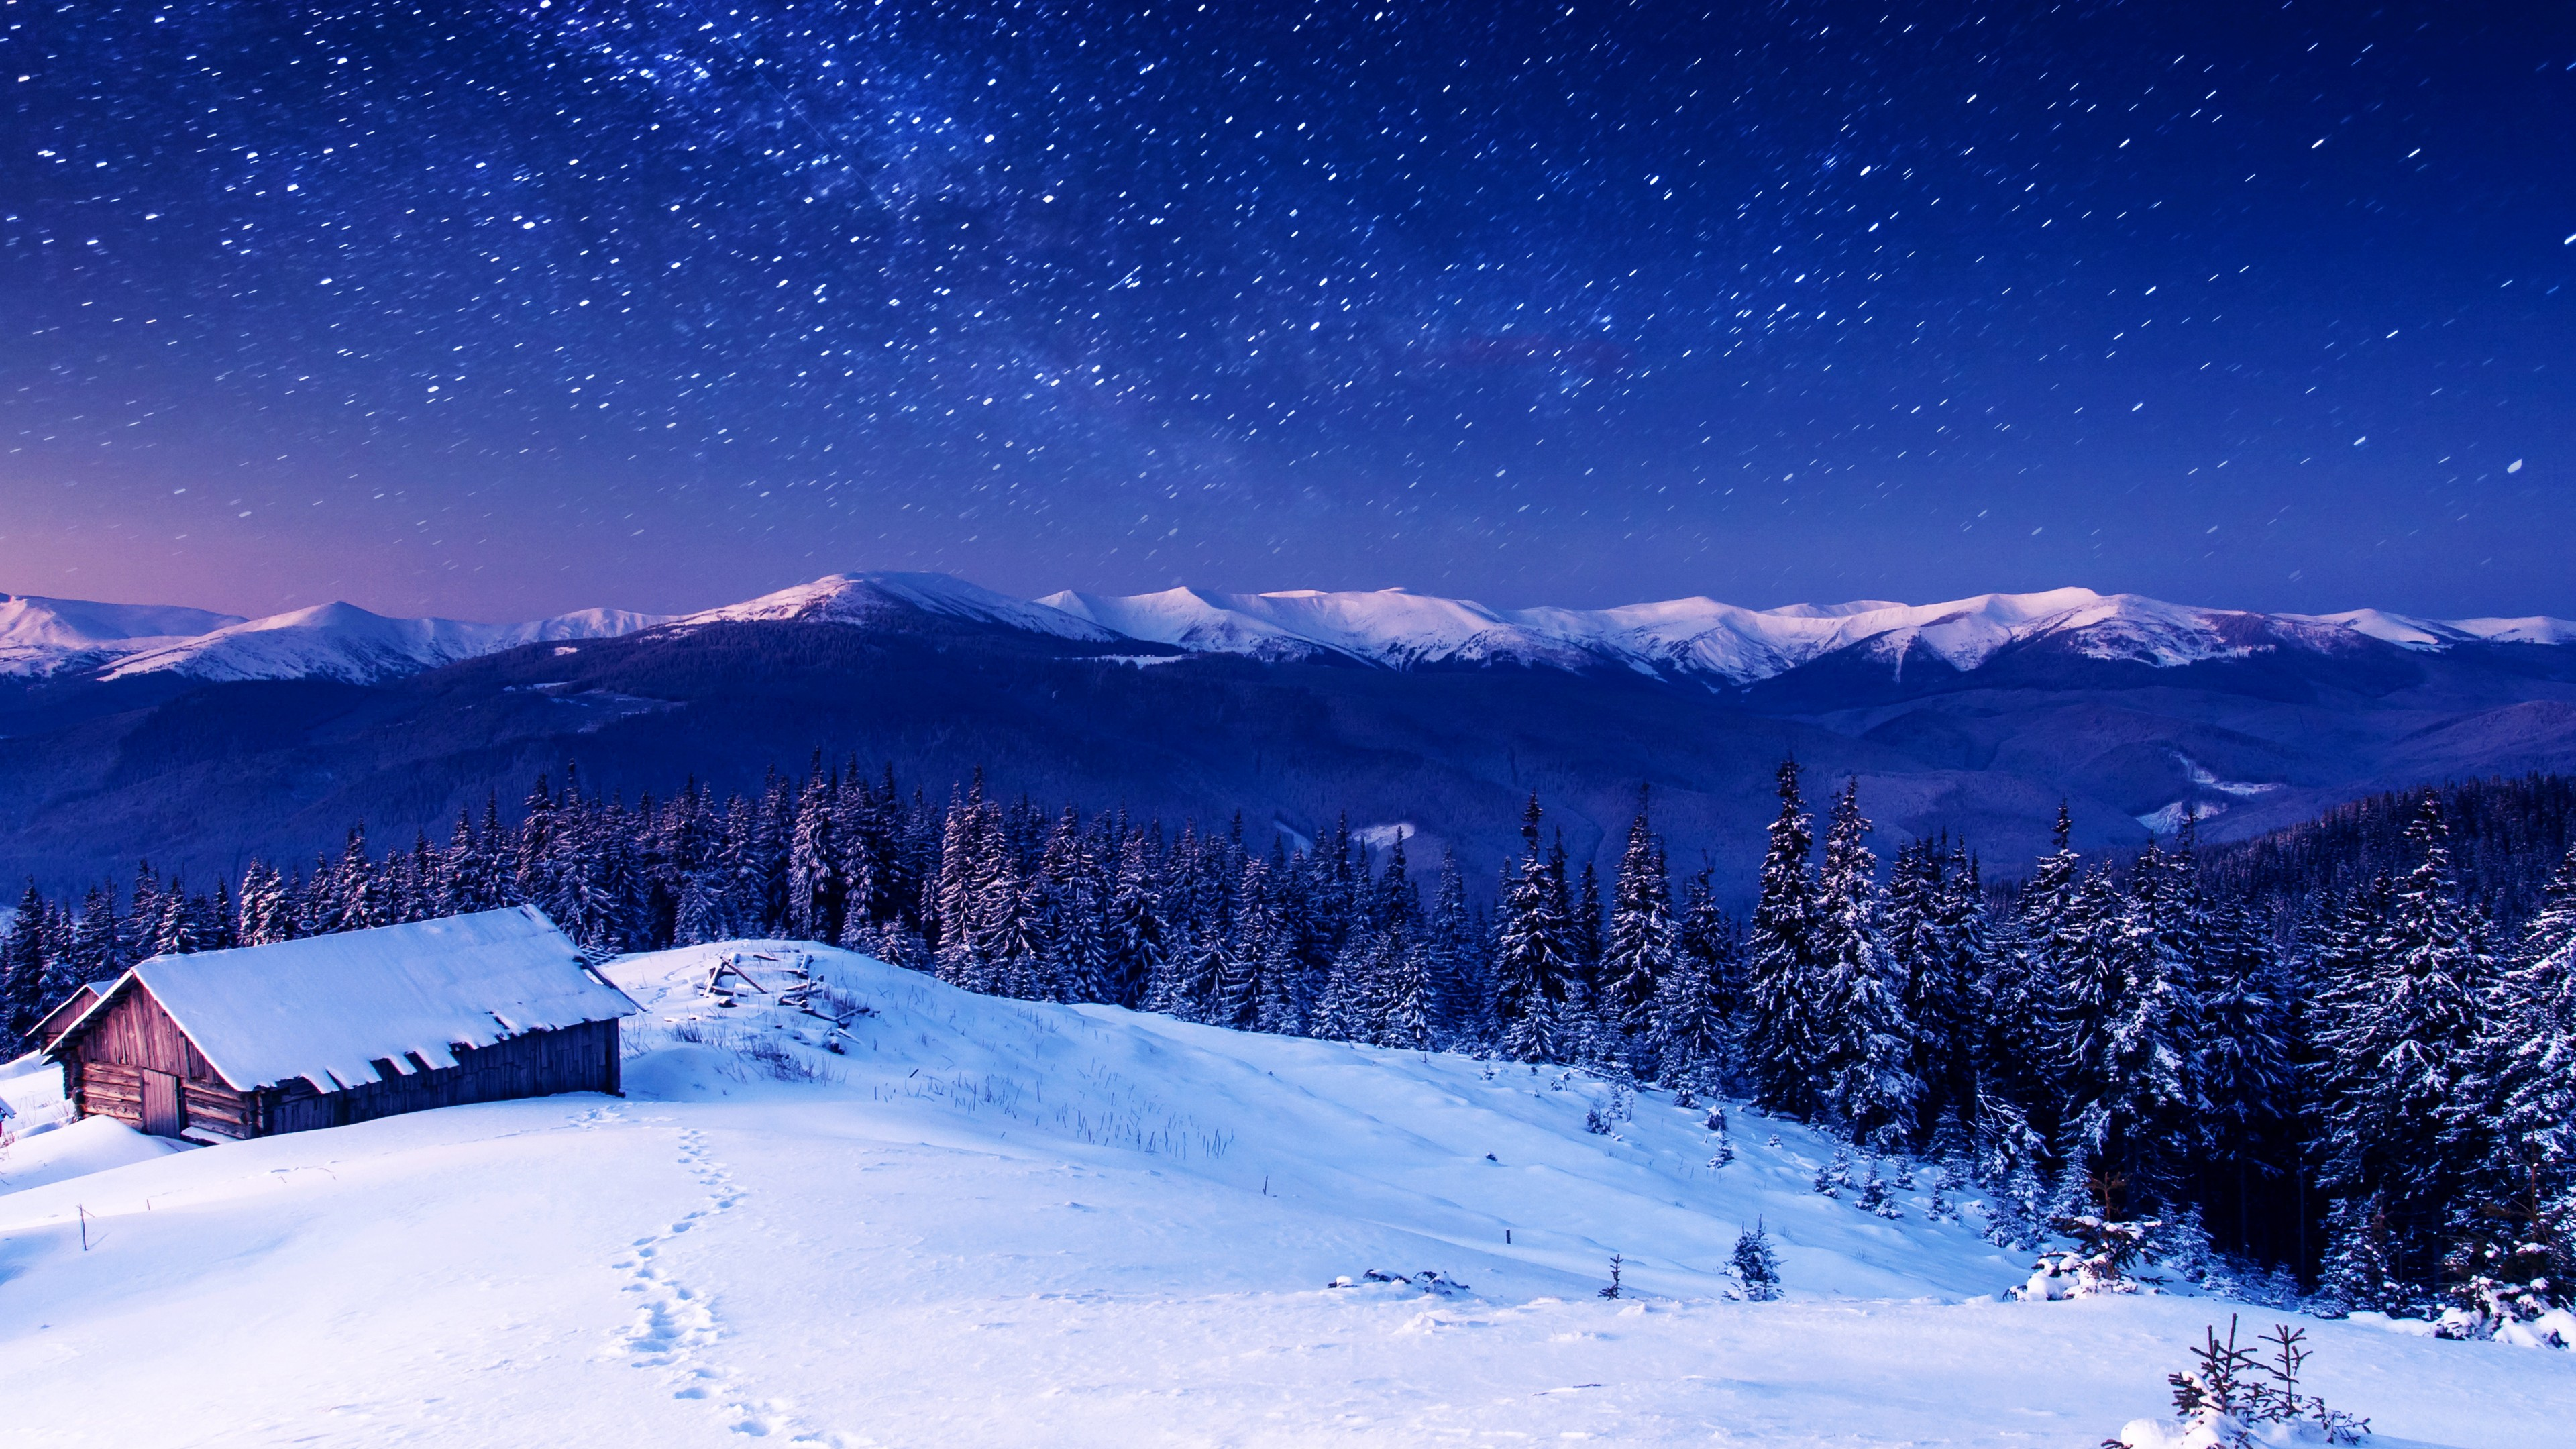 Wallpaper Mountains 5k 4k Wallpaper 8k Night Stars Trees Sky Snow Nature 5285